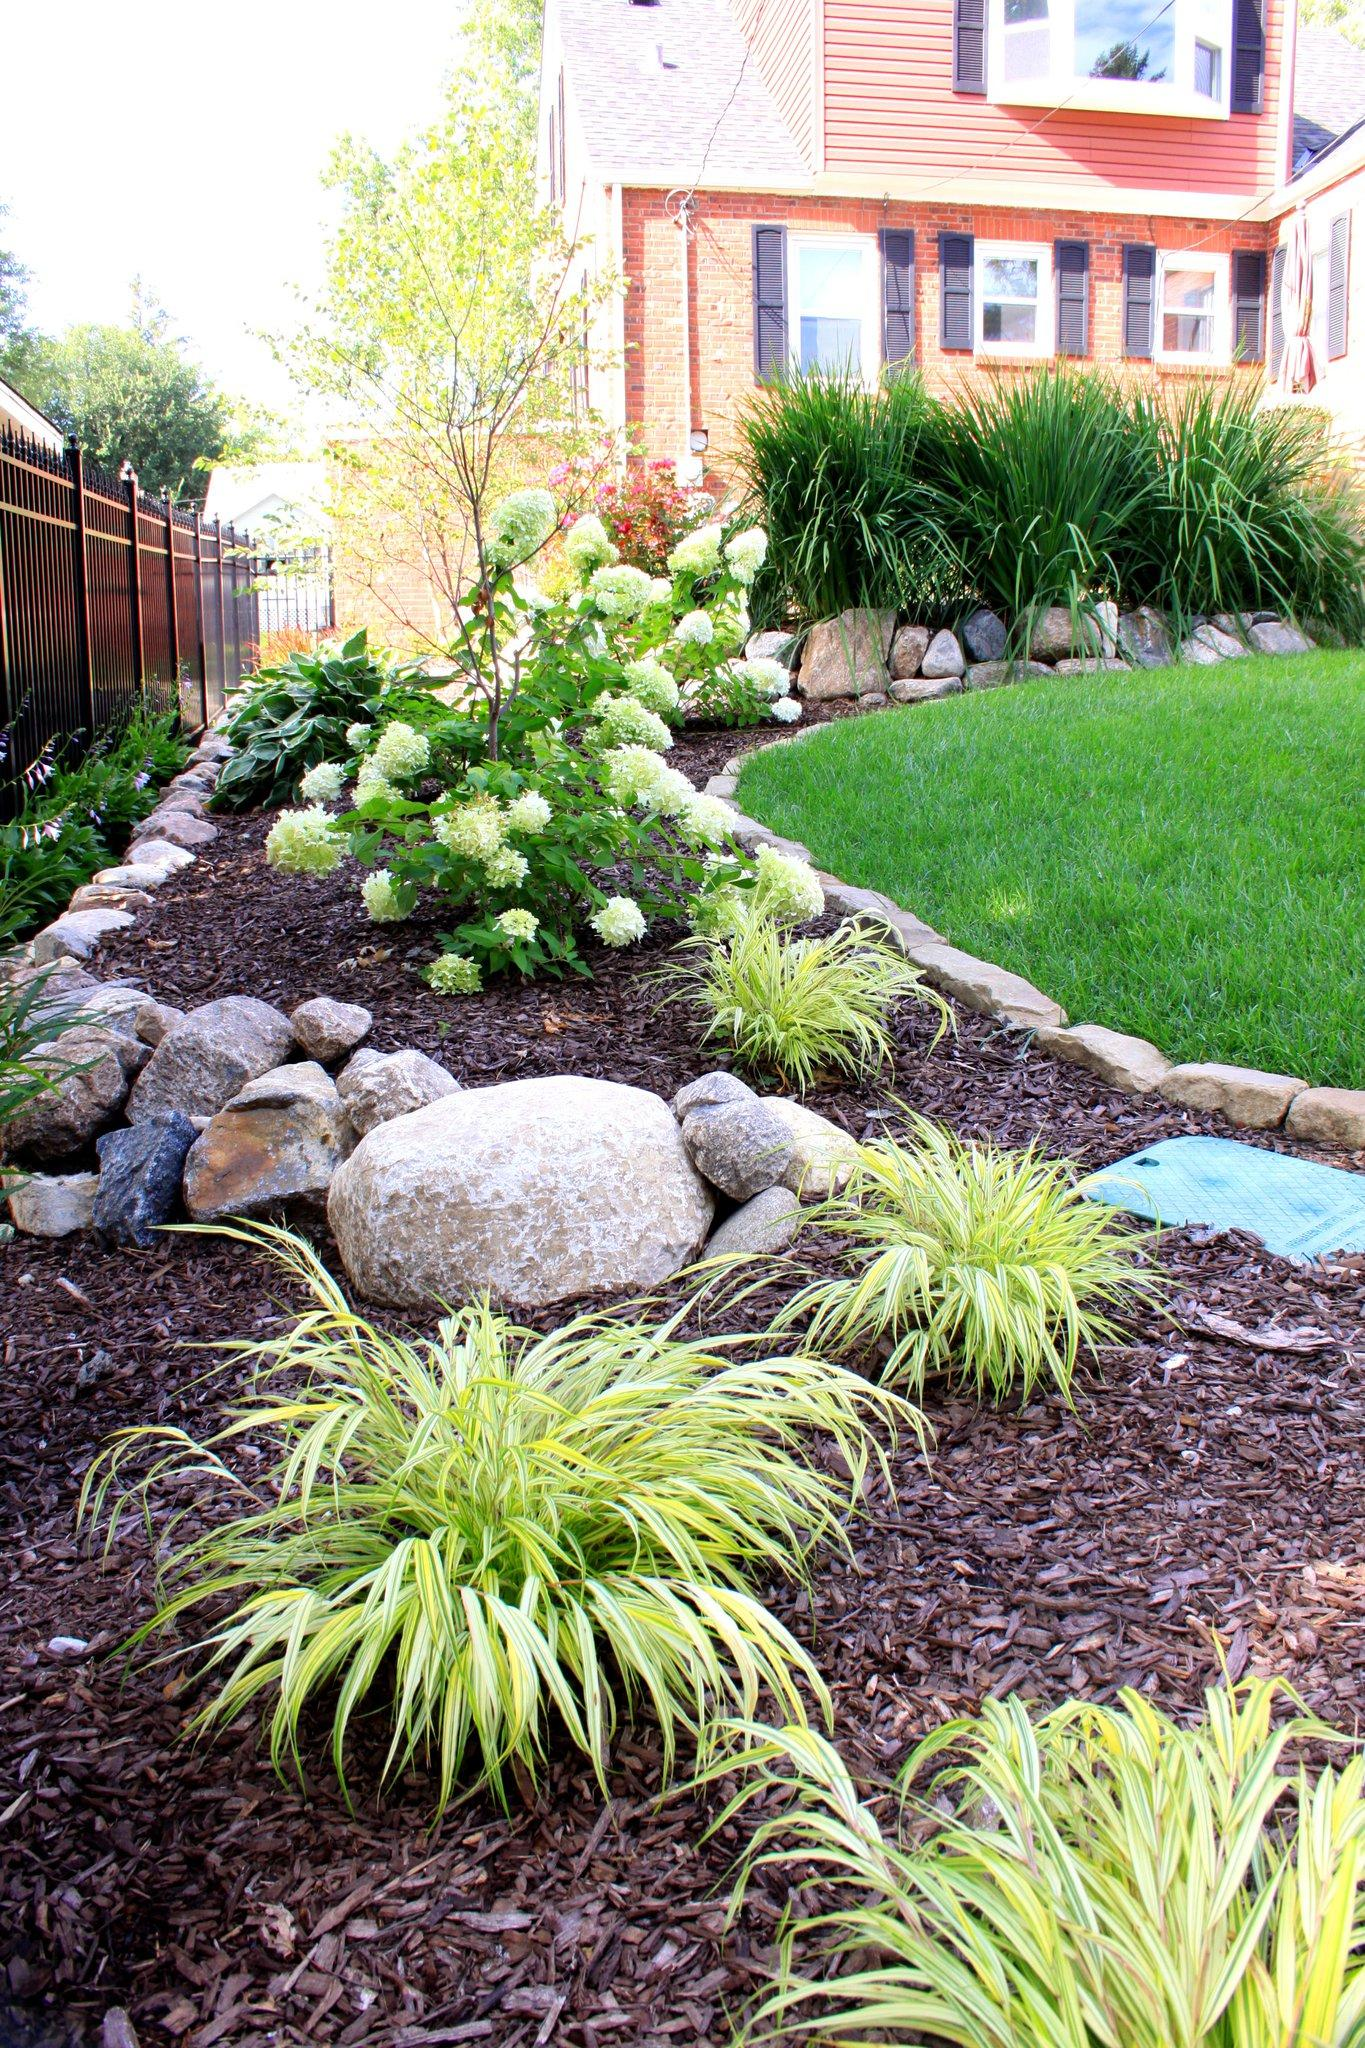 Forest Green Lawn & Landscaping image 13